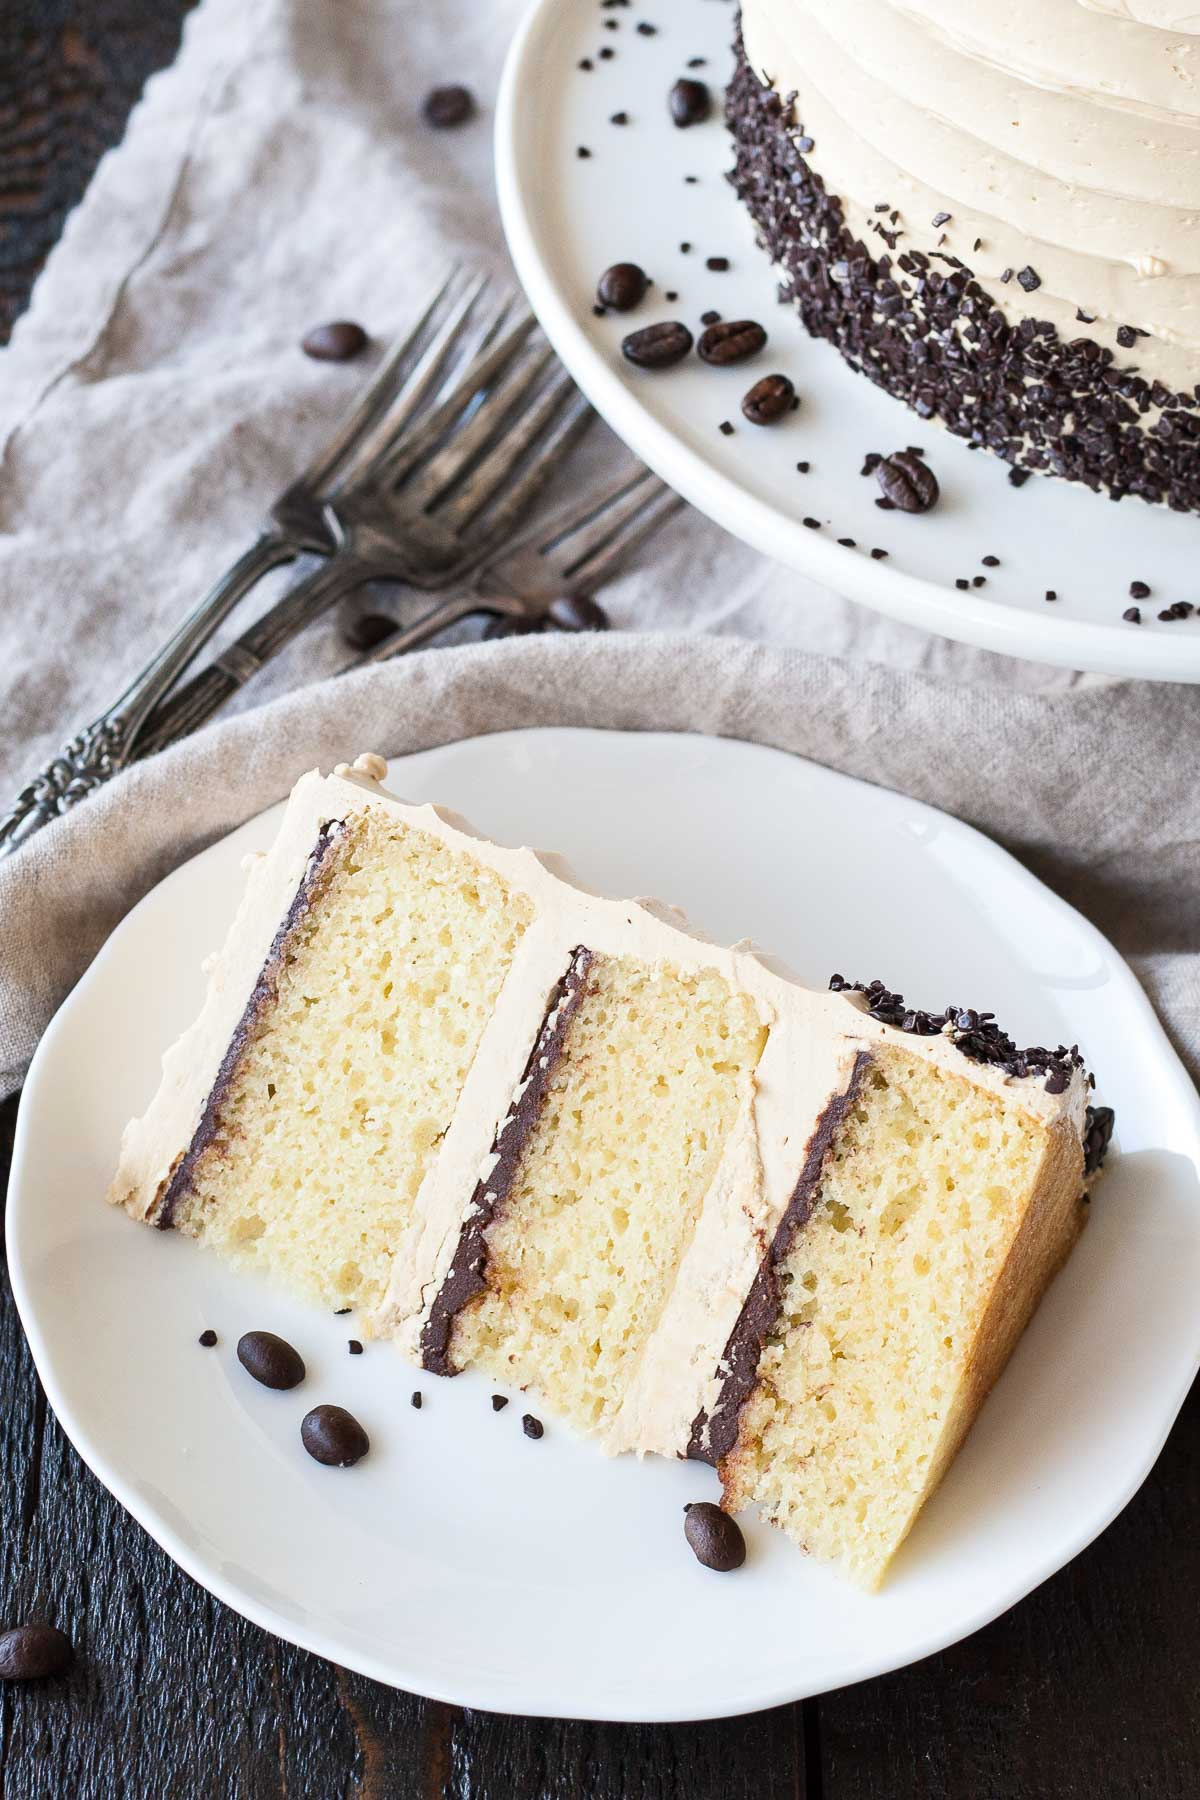 The perfect pairing of coffee & Baileys in this delicious layer cake. A vanilla cake layered with dark chocolate ganache and a coffee Baileys buttercream. | livforcake.com